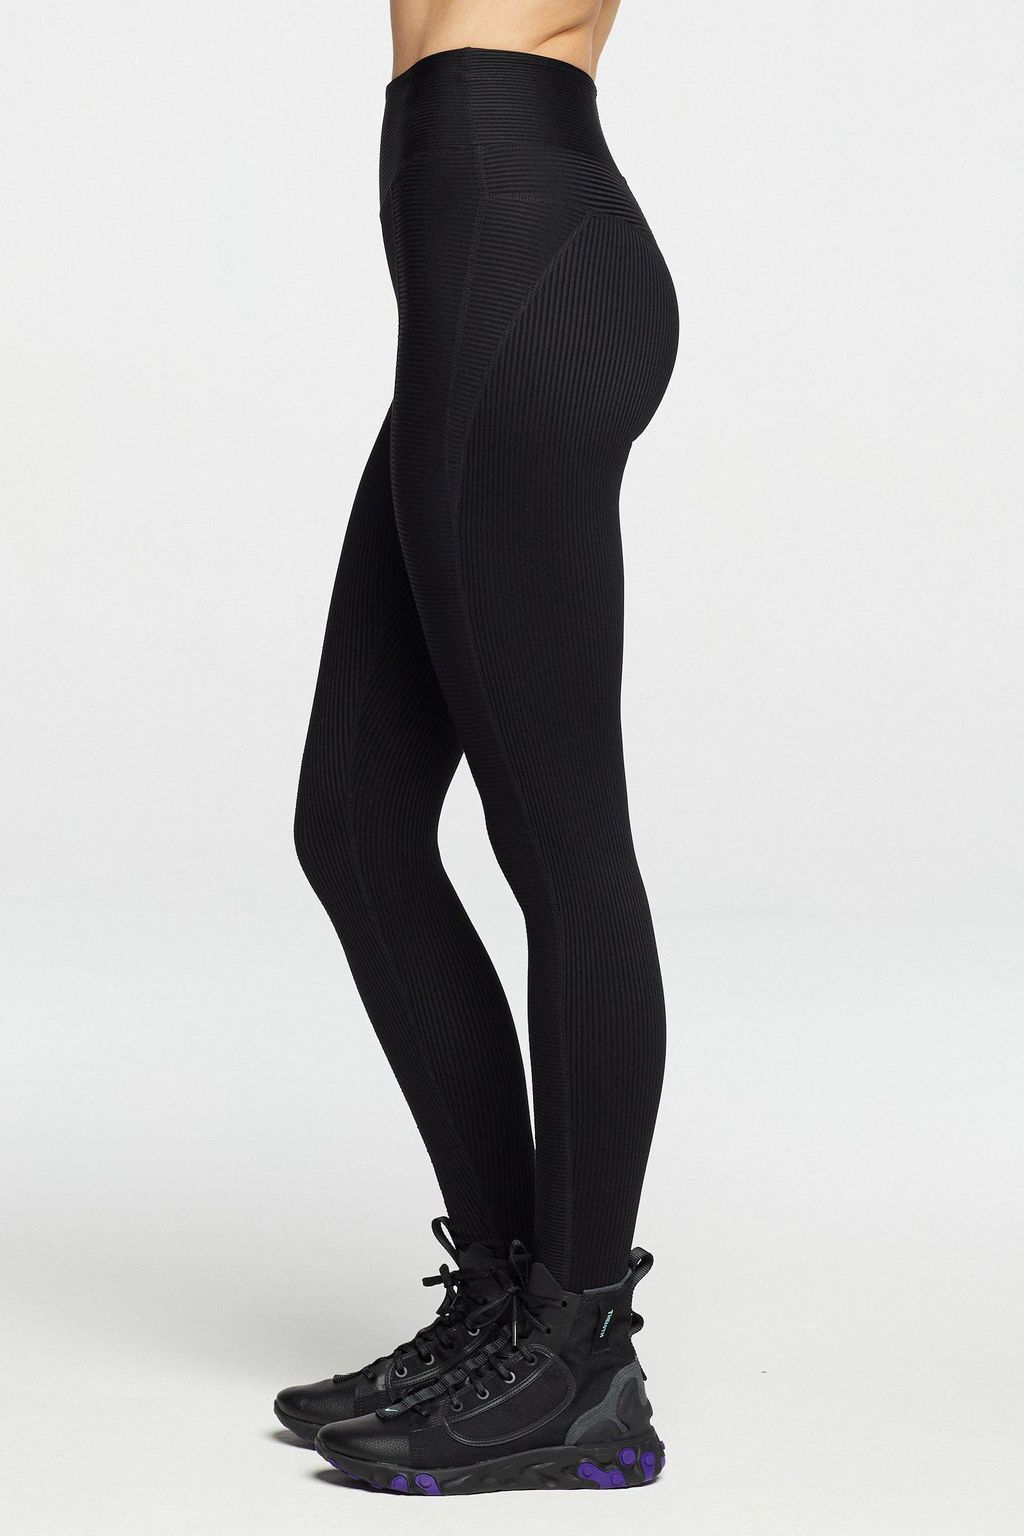 ribbed-54-legging-leggings-year-of-ours-black-extra-small-3.jpg